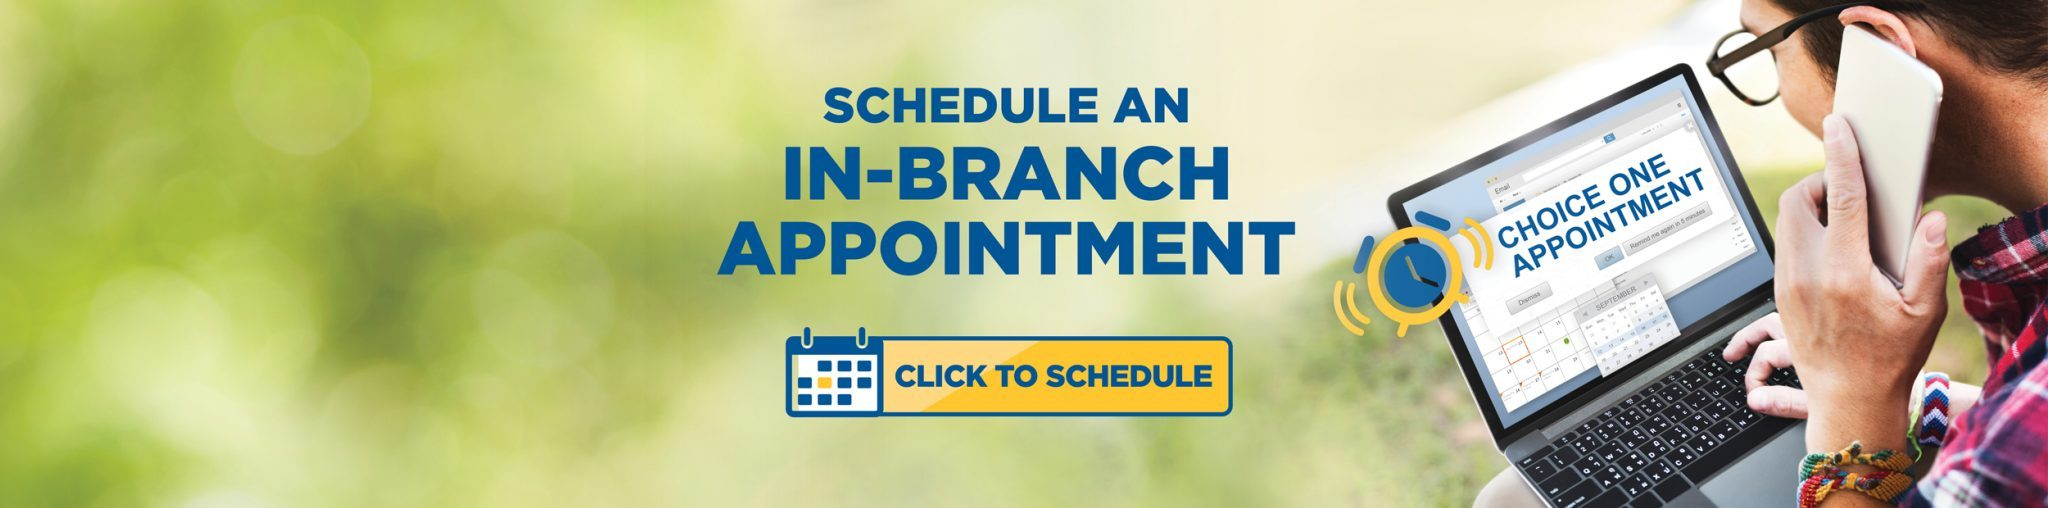 Schedule an in-branch appointment home page banner featuring a man on his laptop speaking into a cell phone.